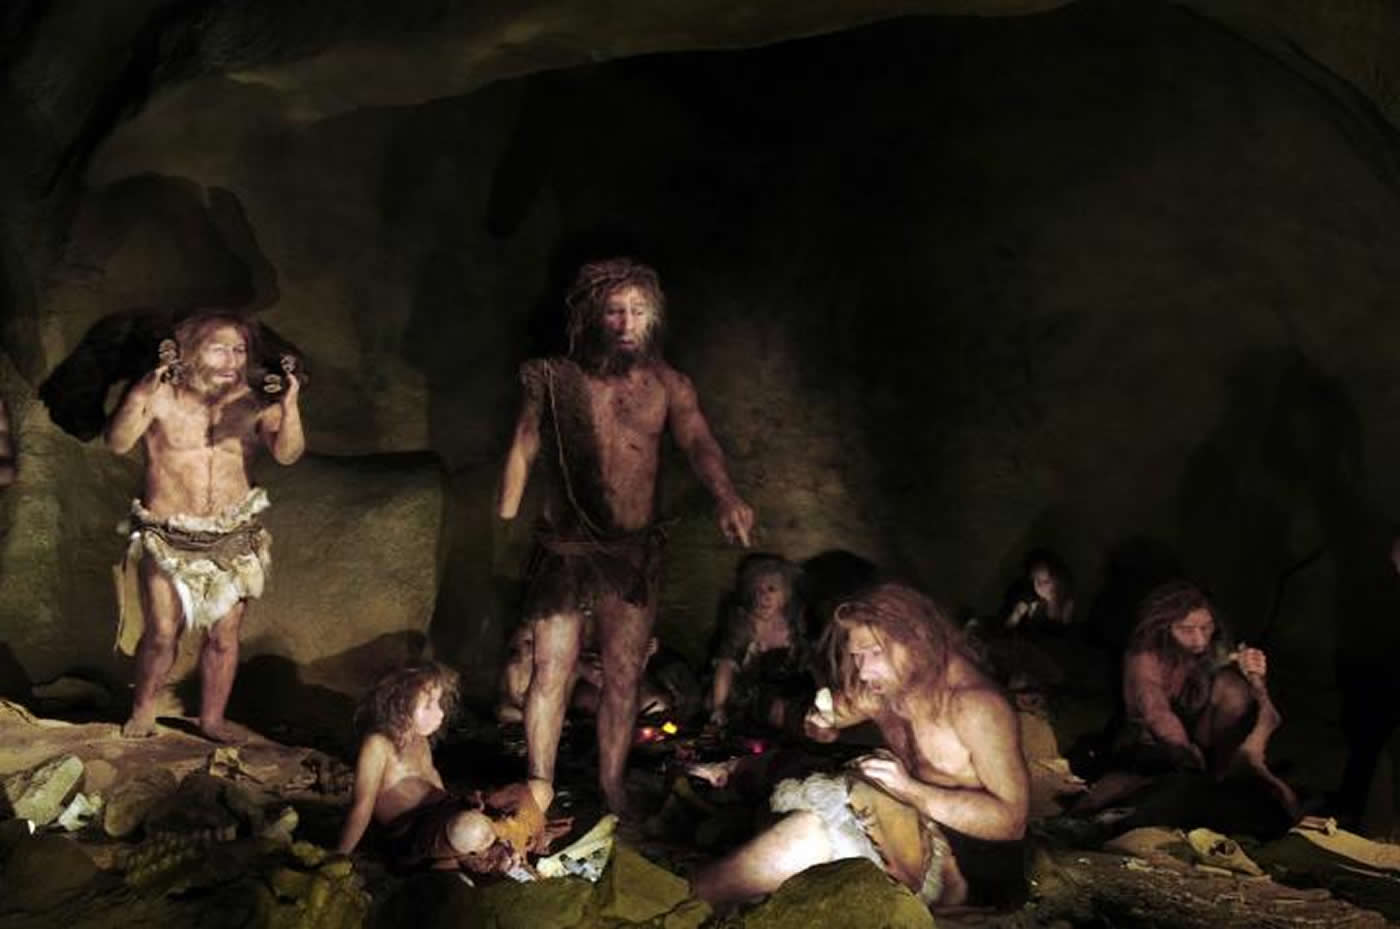 This shows a family of neanderthals